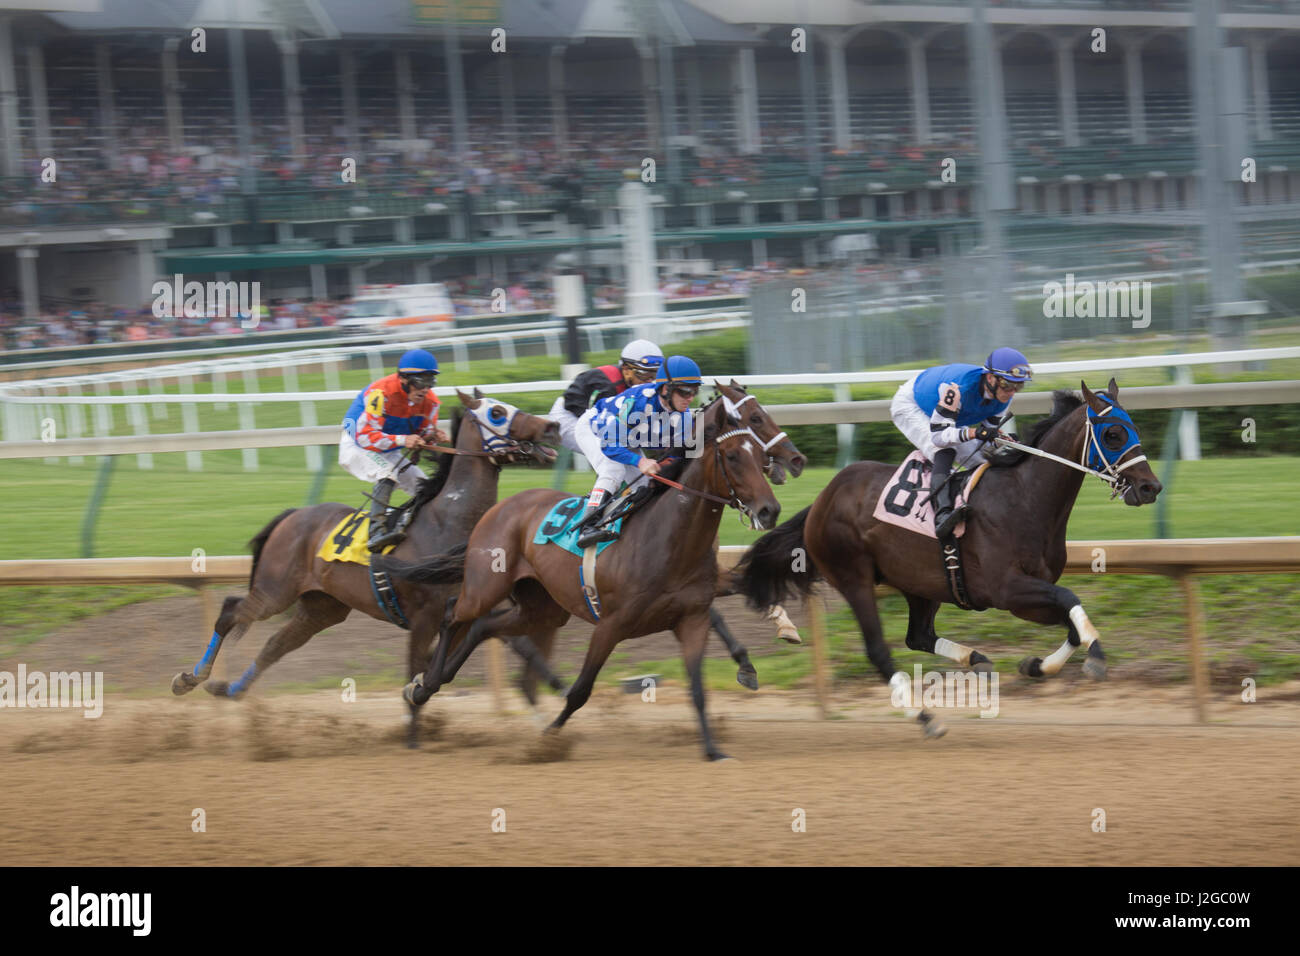 USA, Kentucky, Louisville. Horses racing at Churchill Downs. Credit as: Don Grall / Jaynes Gallery / DanitaDelimont.com - Stock Image